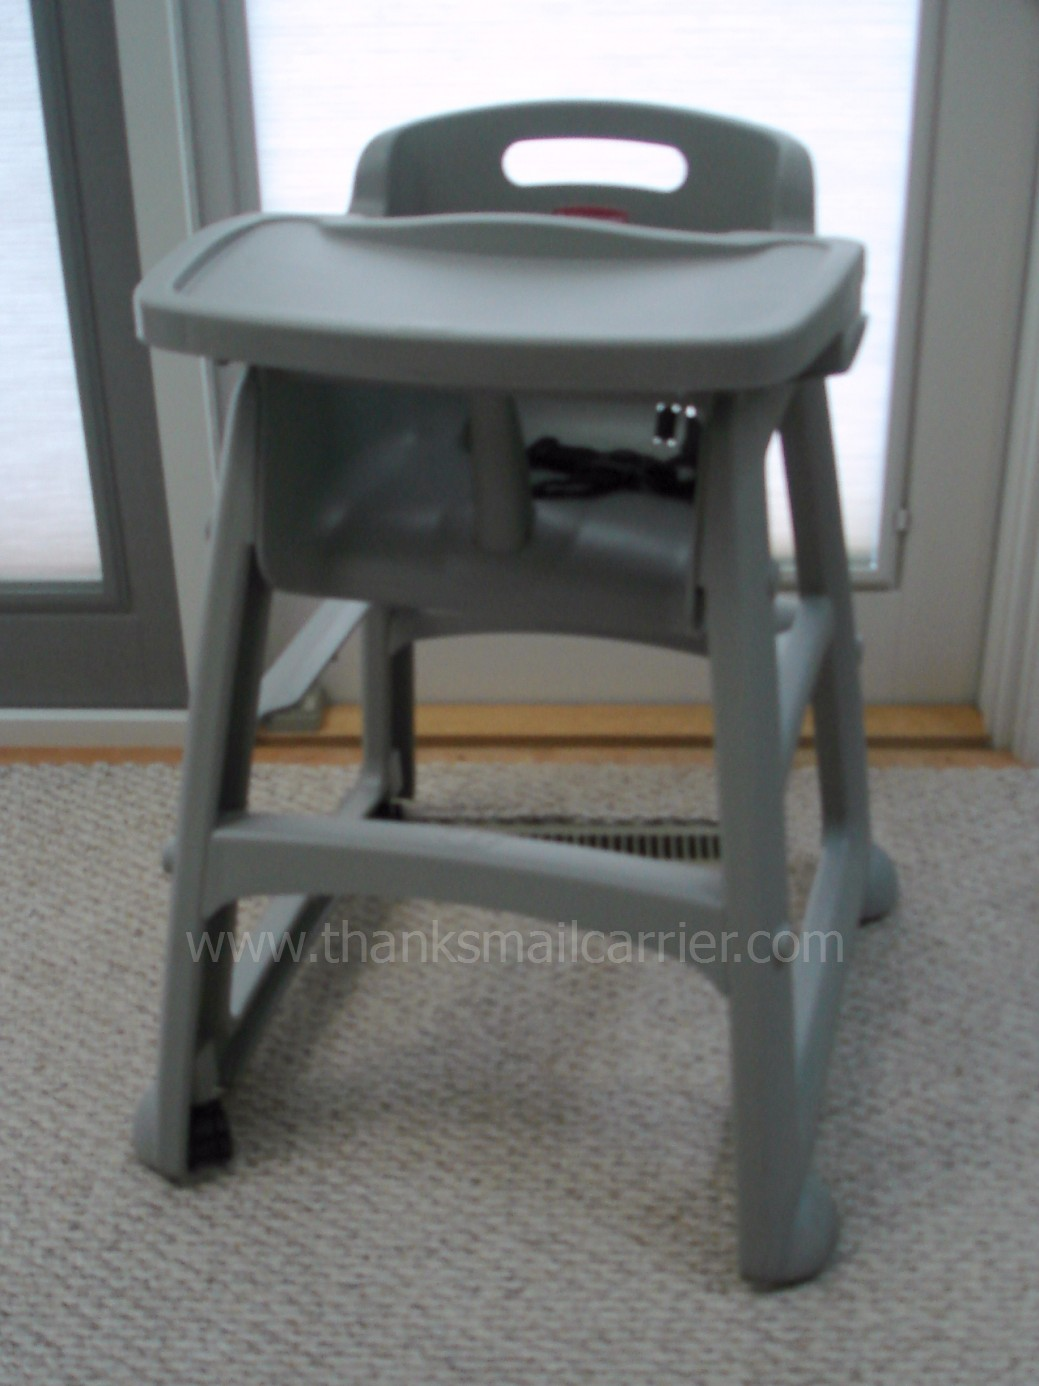 Restaurant High Chair With Tray Monte Rocking Canada Thanks Mail Carrier Rubbermaid And From When It Comes To Chairs This Is One That You Might Typically Expect Find Only In A But I Love The Idea Of Having At Home